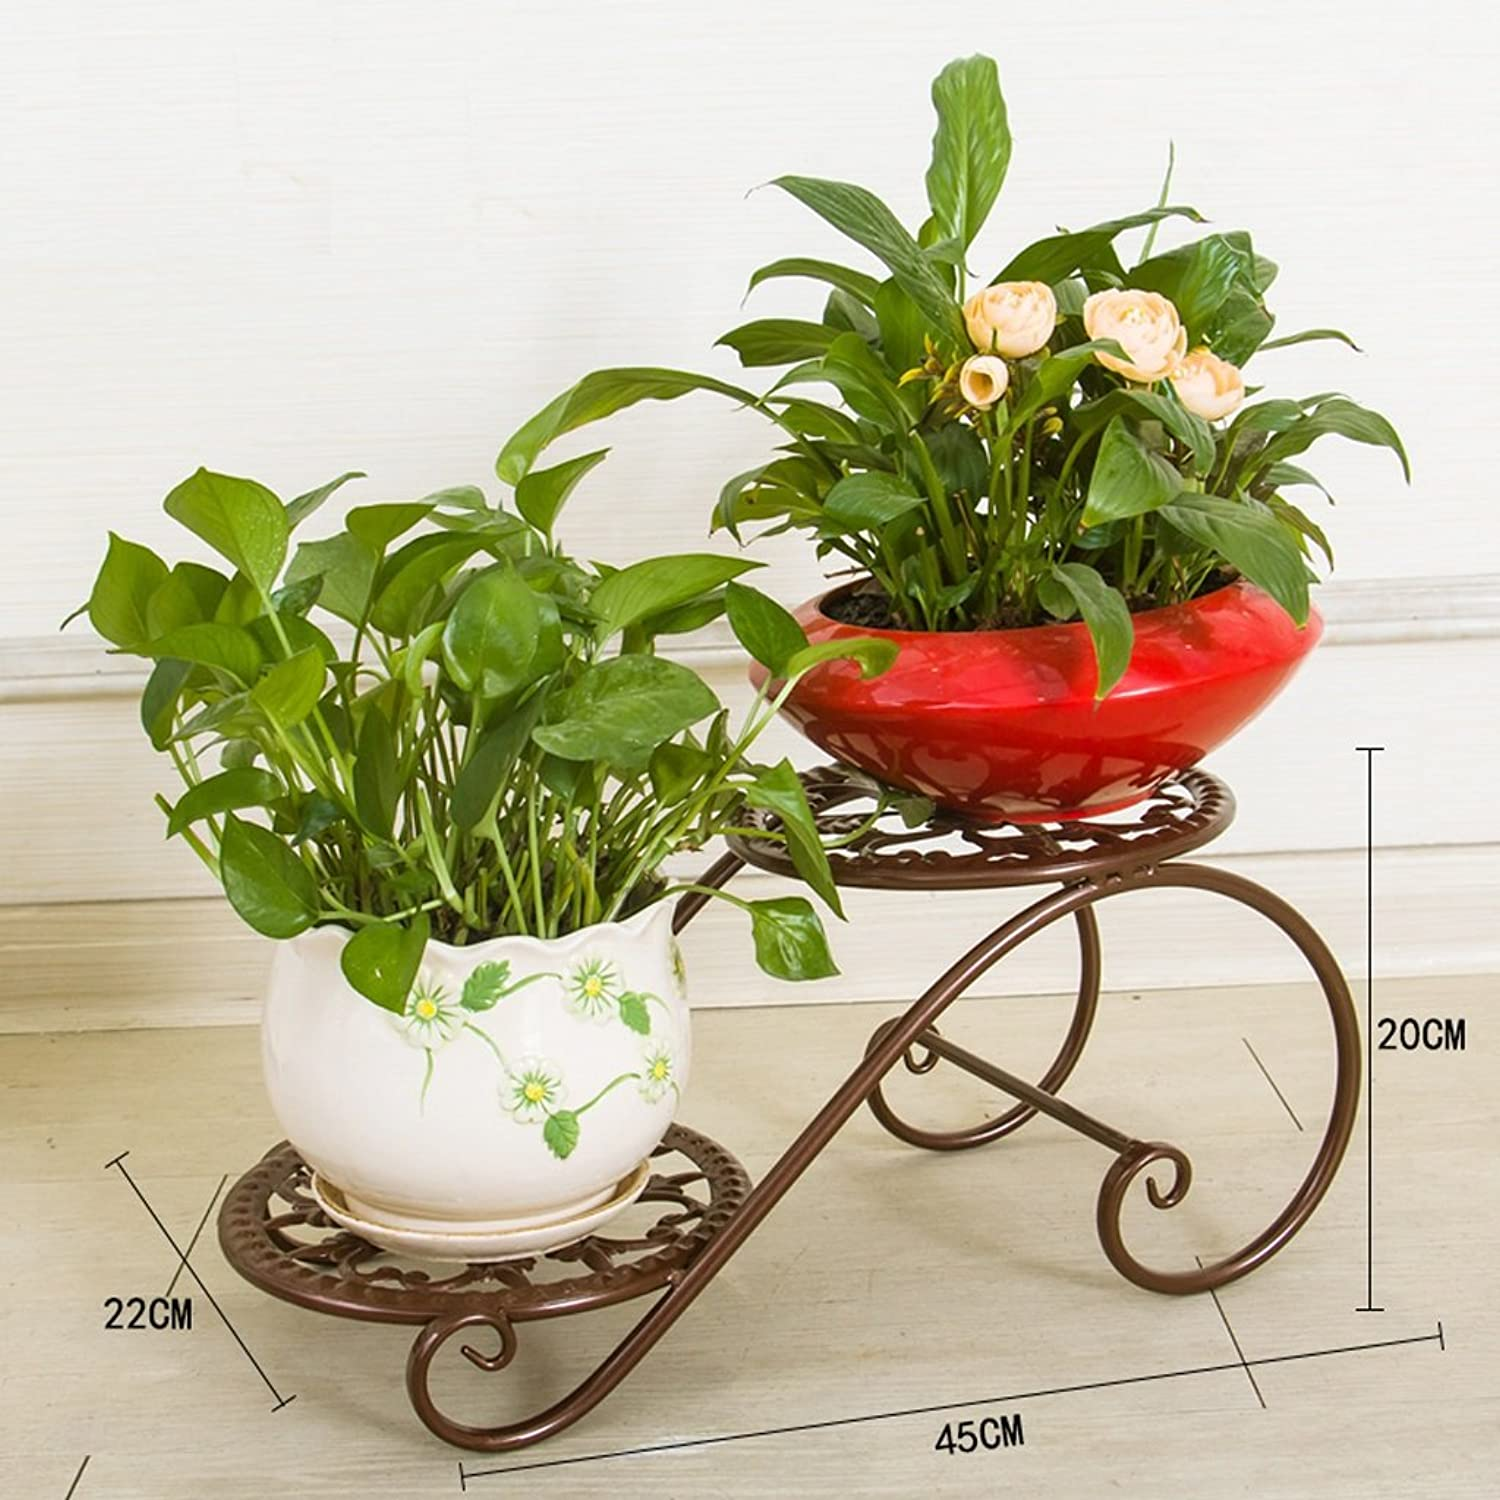 NYDZDM Iron 2 Pot Plant Planter Herbs Flower Stands Indoor and Outdoor Use Vintage Style, 45  22  20cm - 2 Pack Bronze (color   45  22  20cm1 pcs)